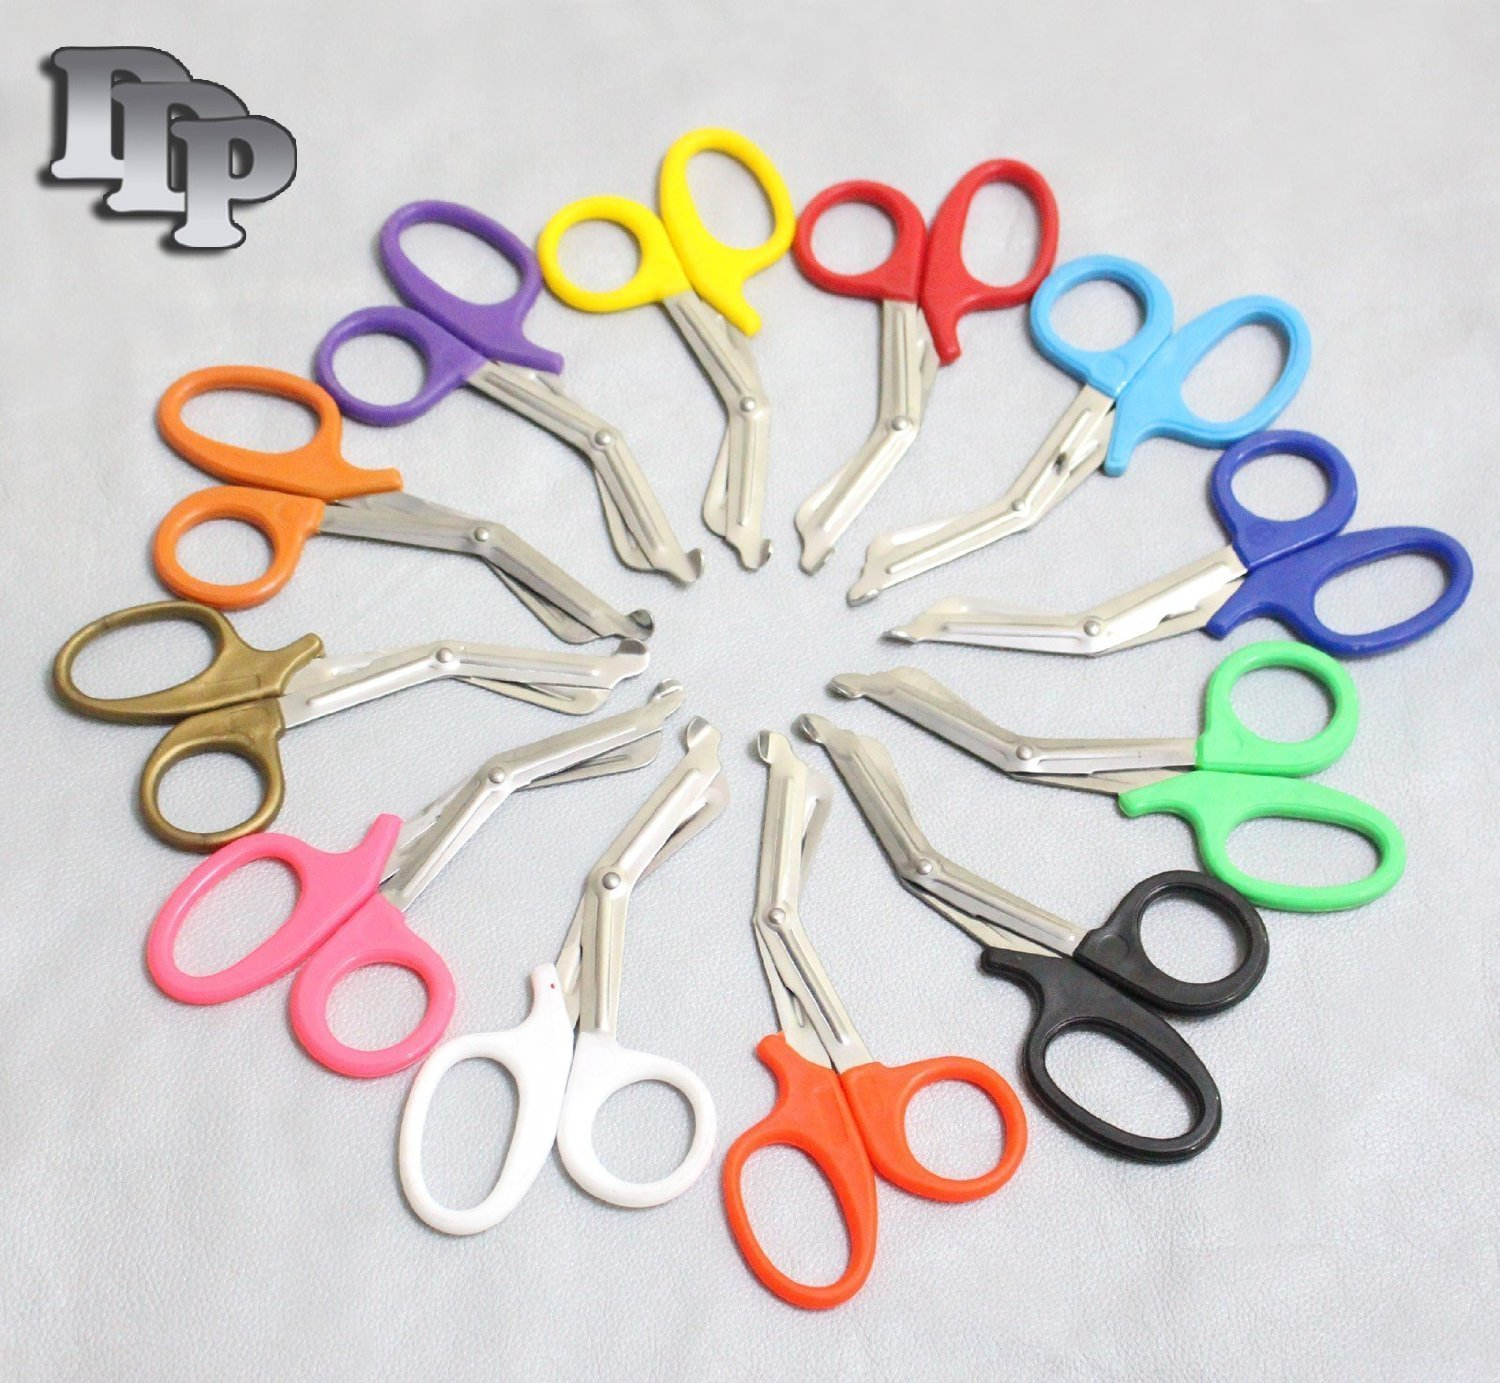 3 PCS (NEON PINK & TEAL & NEON ORANGE) PARAMEDIC UTILITY BANDAGE TRAUMA EMT EMS SHEARS SCISSORS 7.25 INCH STAINLESS STEEL (DDP QUALITY)